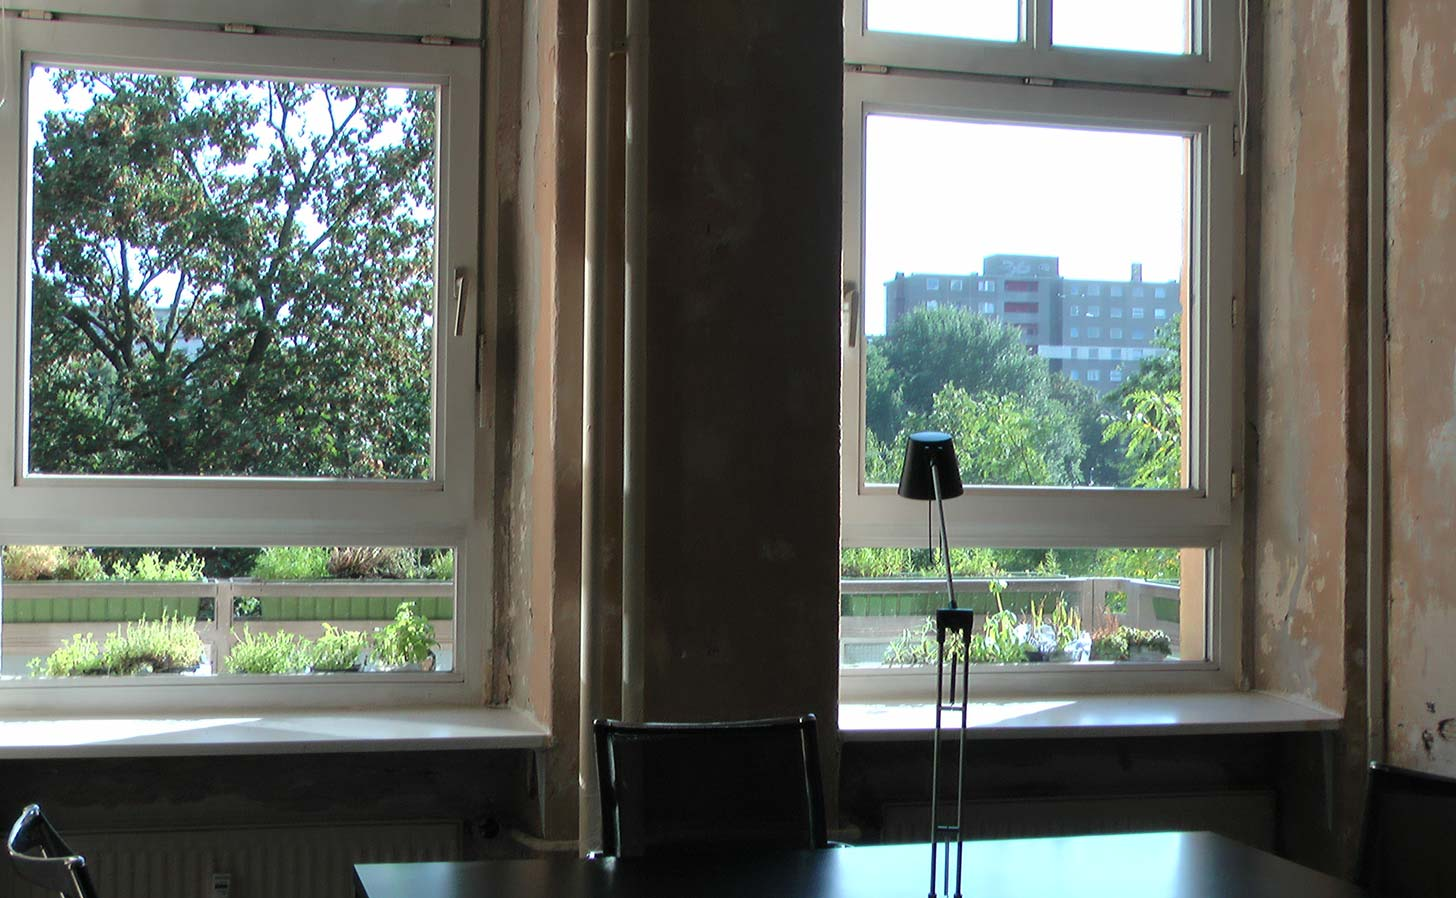 Office with park view at Nest Co-working, Berlin. Photo: Berlinow